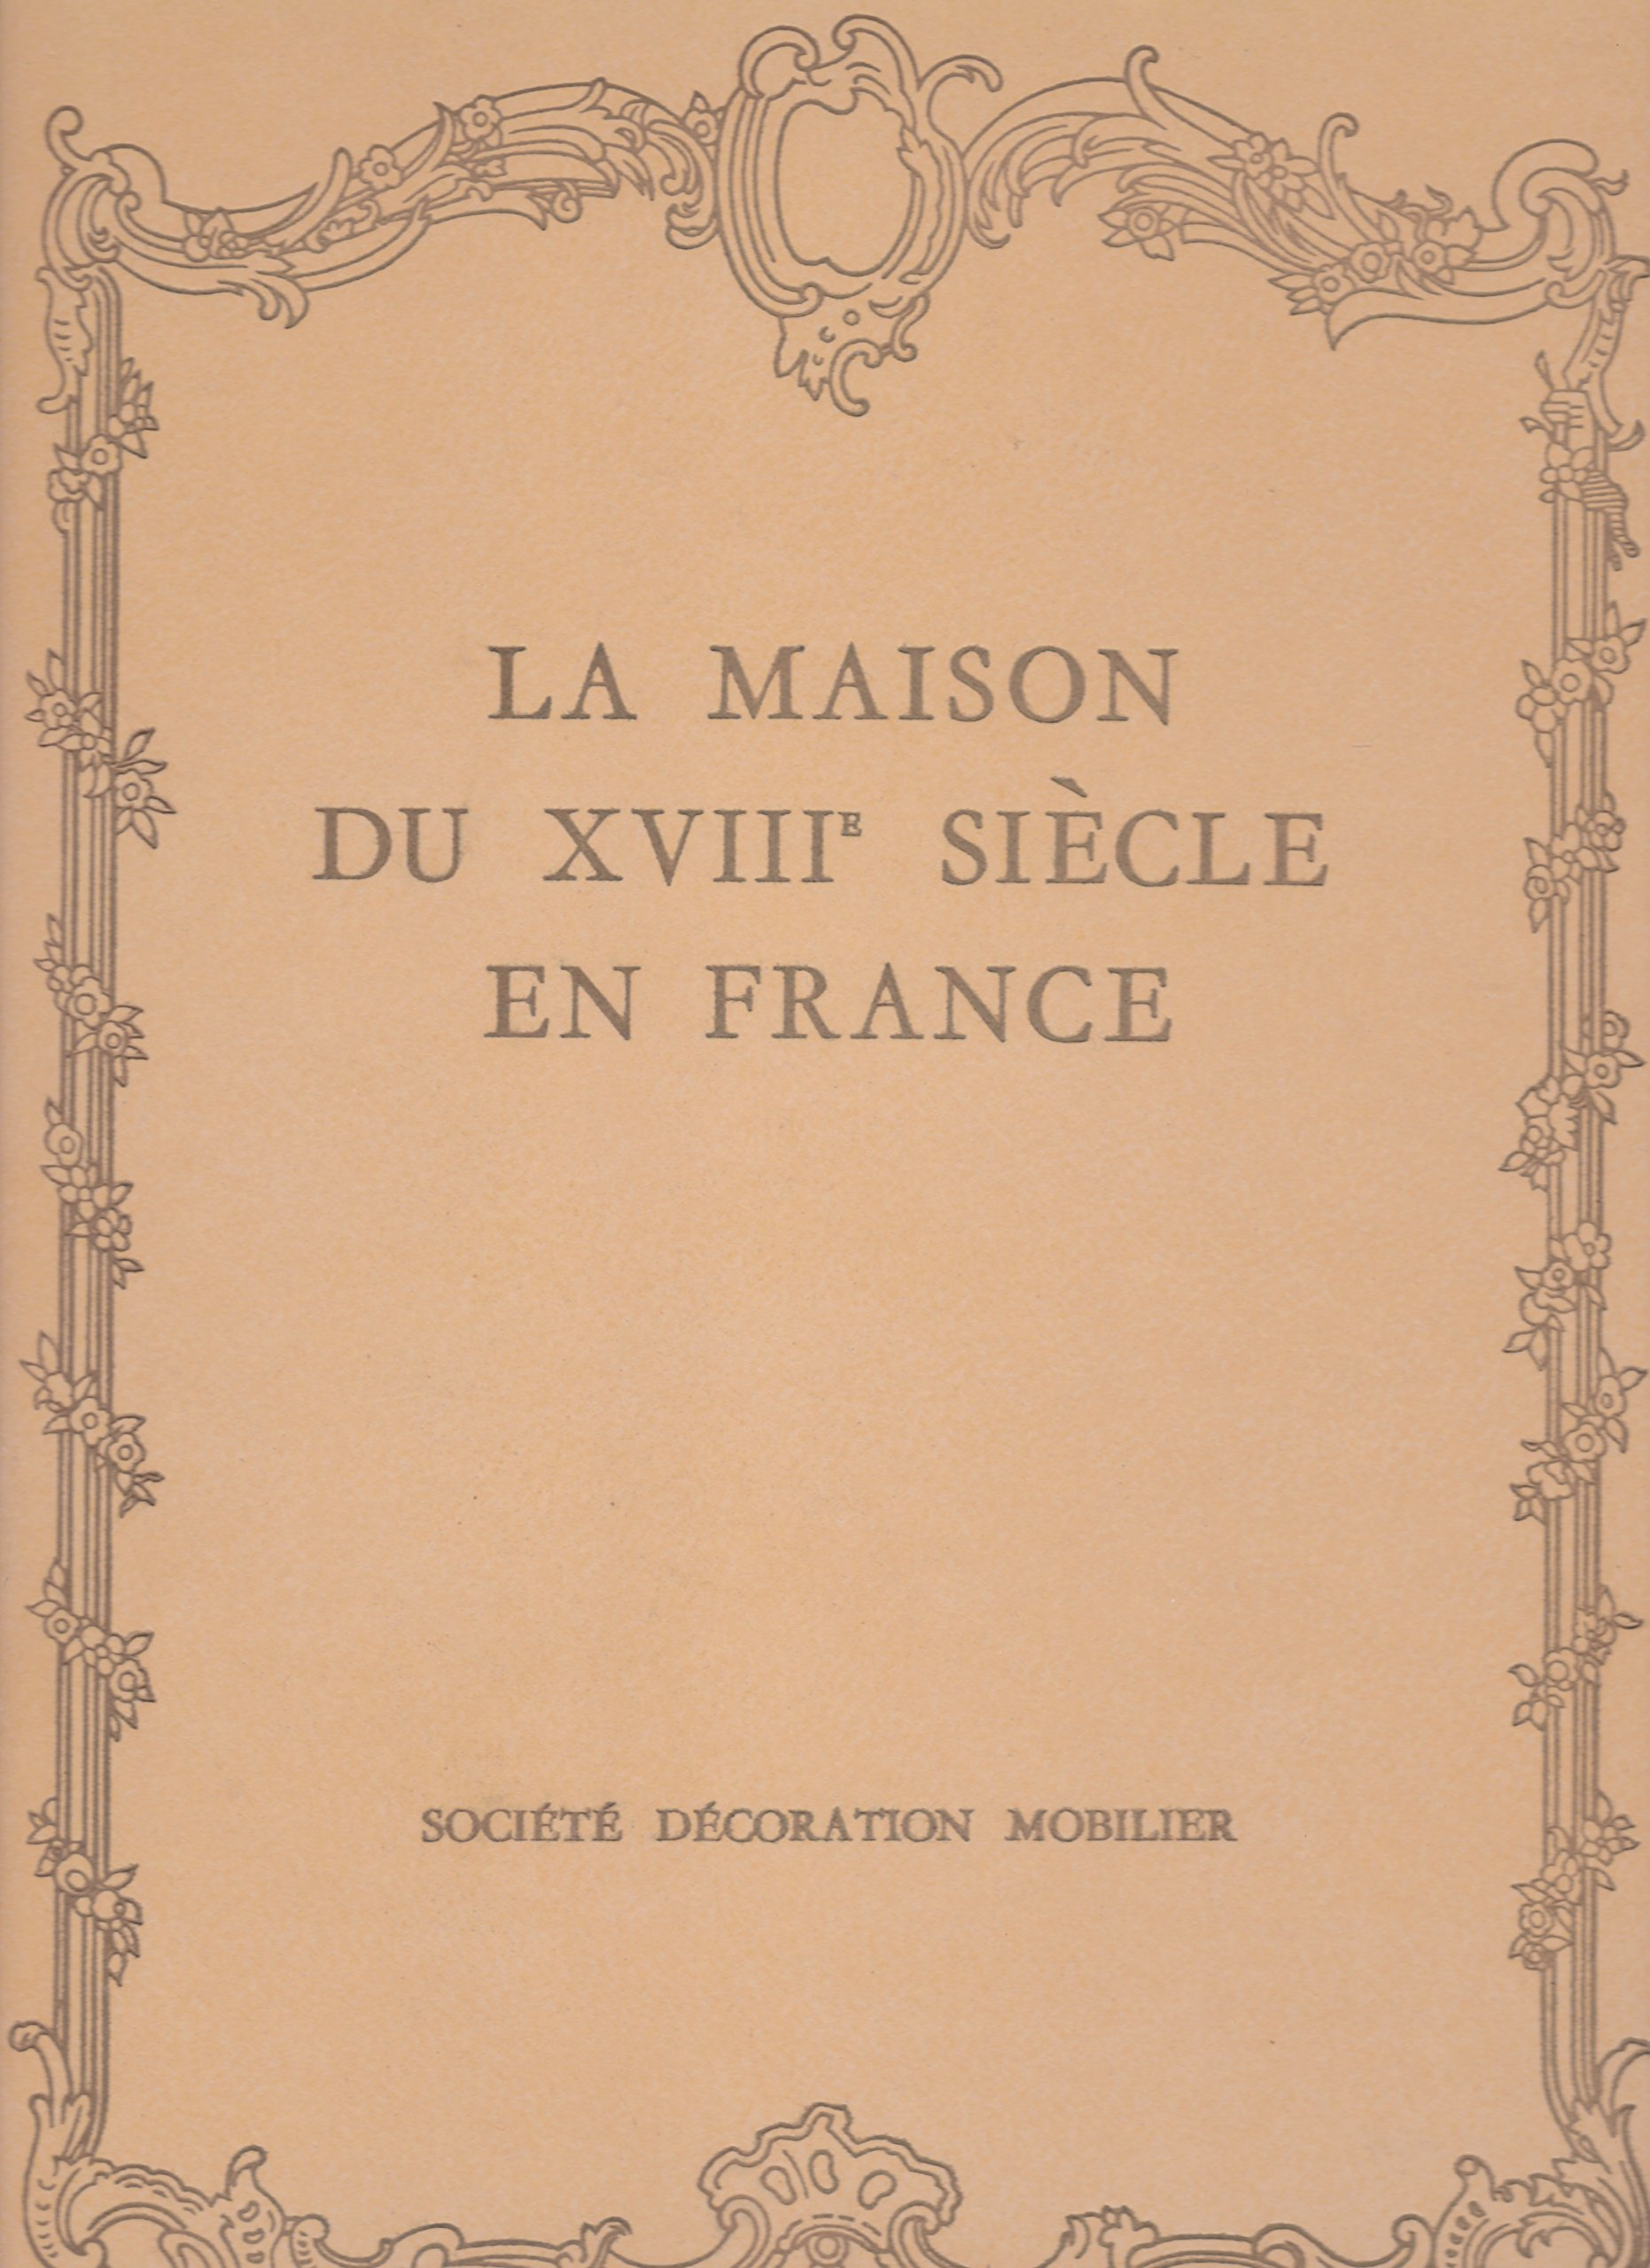 La maison du xviii siecle en france societe decoration mobilier collection plaisir de france hardcover 1966